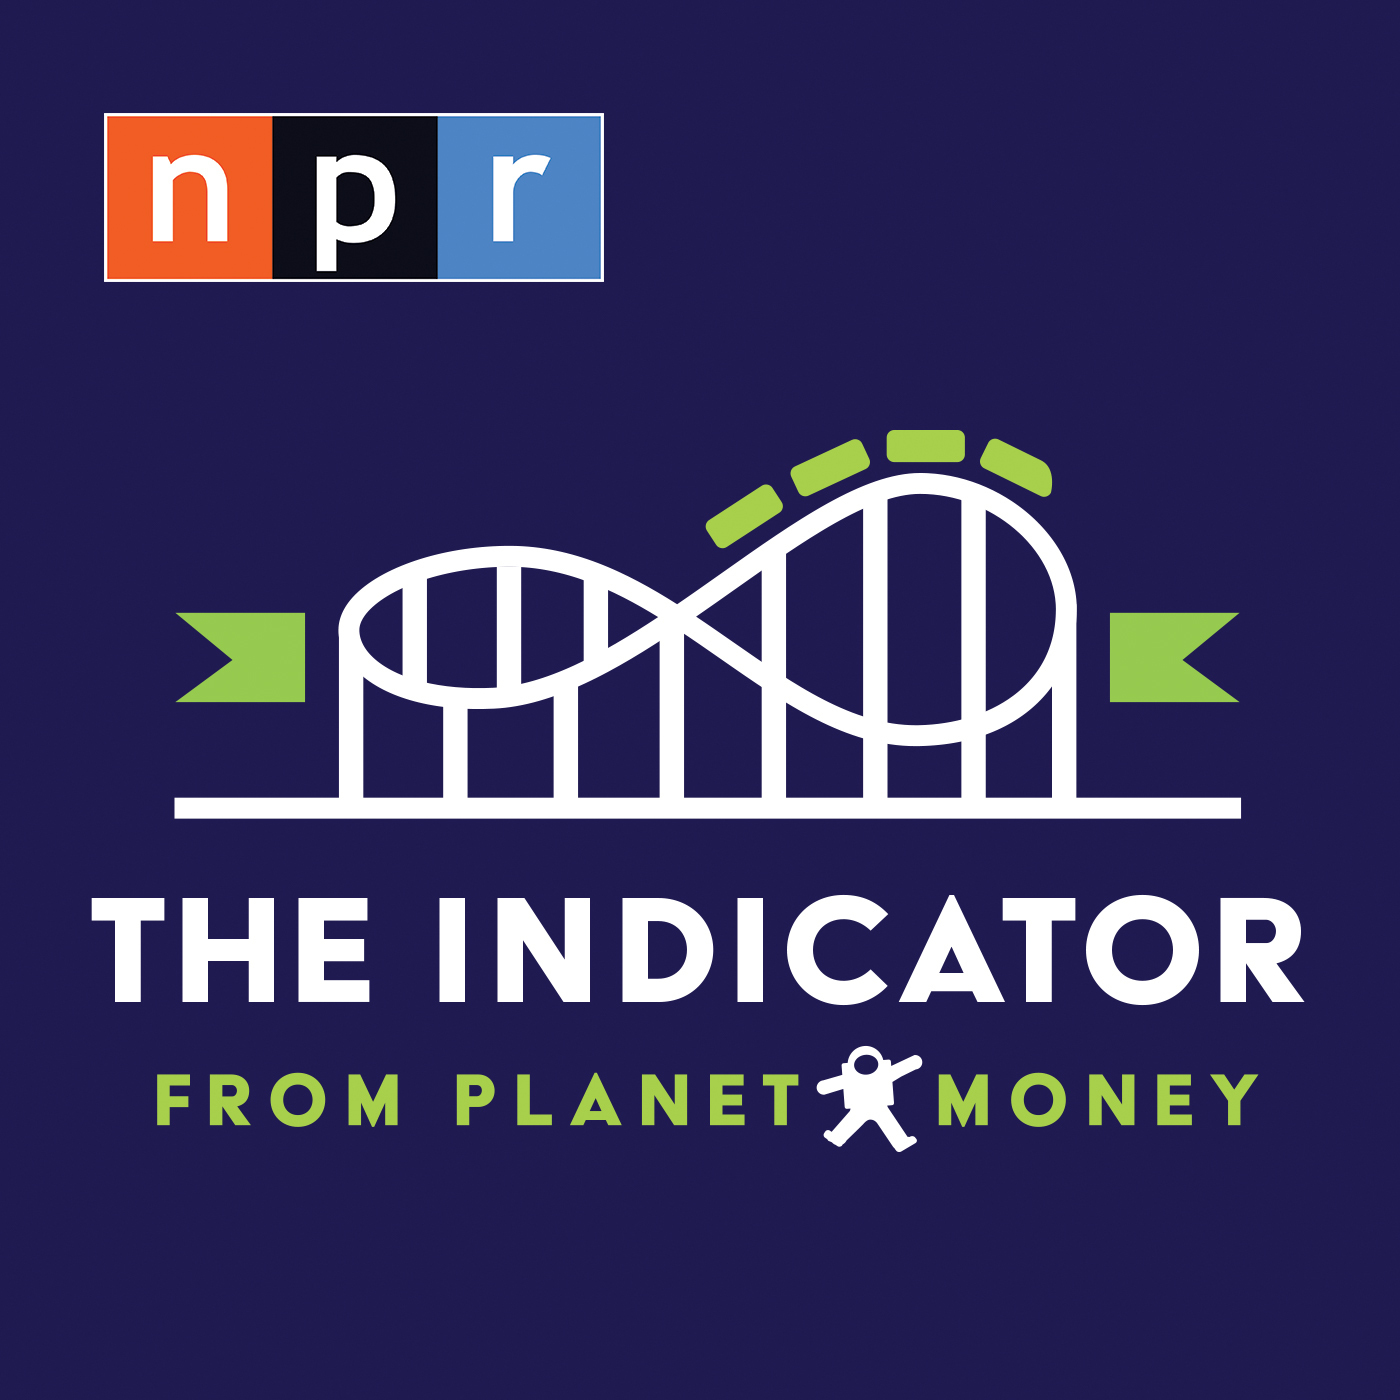 The Indicator from Planet Money Logo